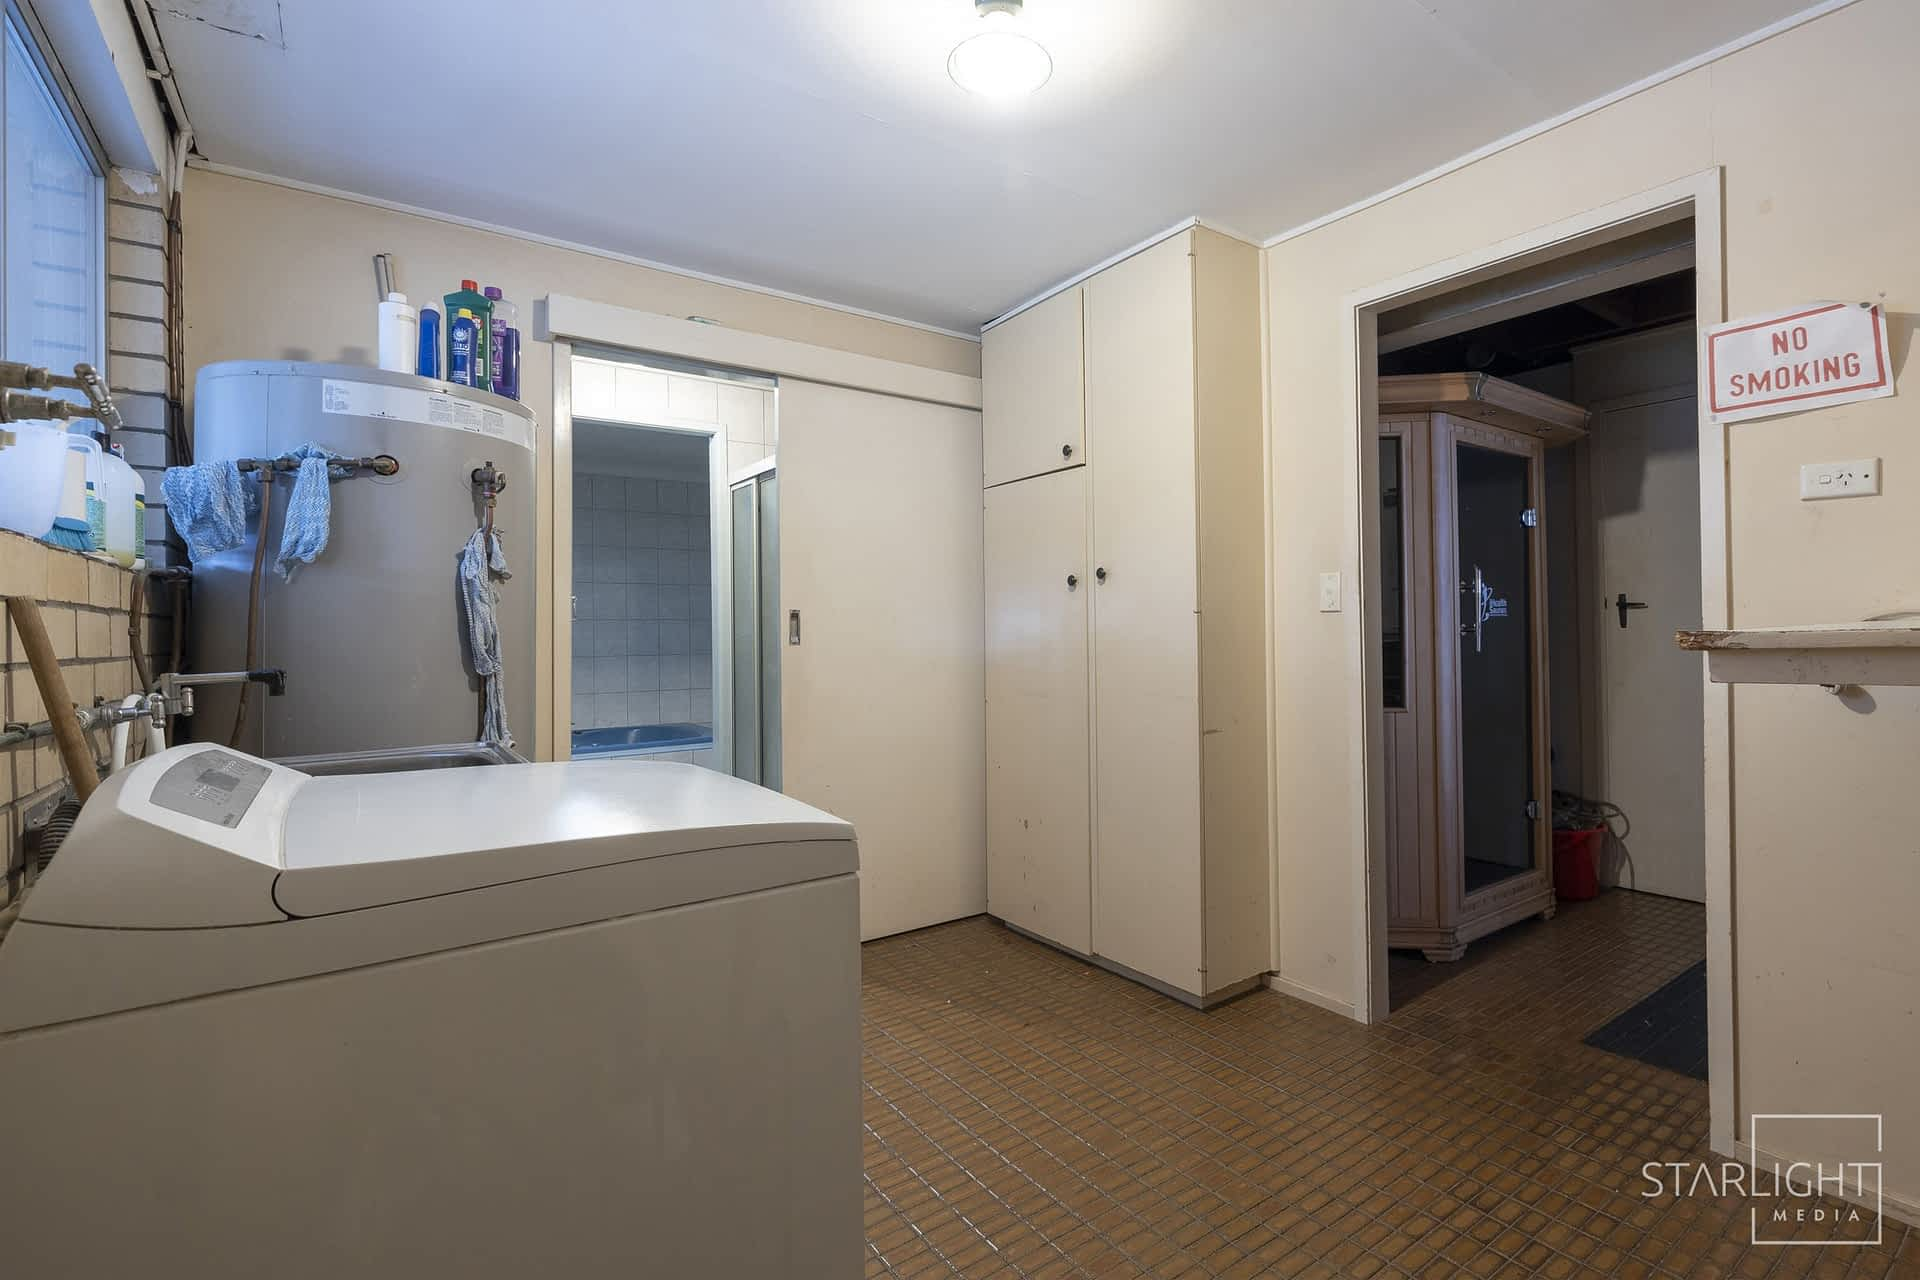 2Brothers Bathroom Renovation Photography Before & After